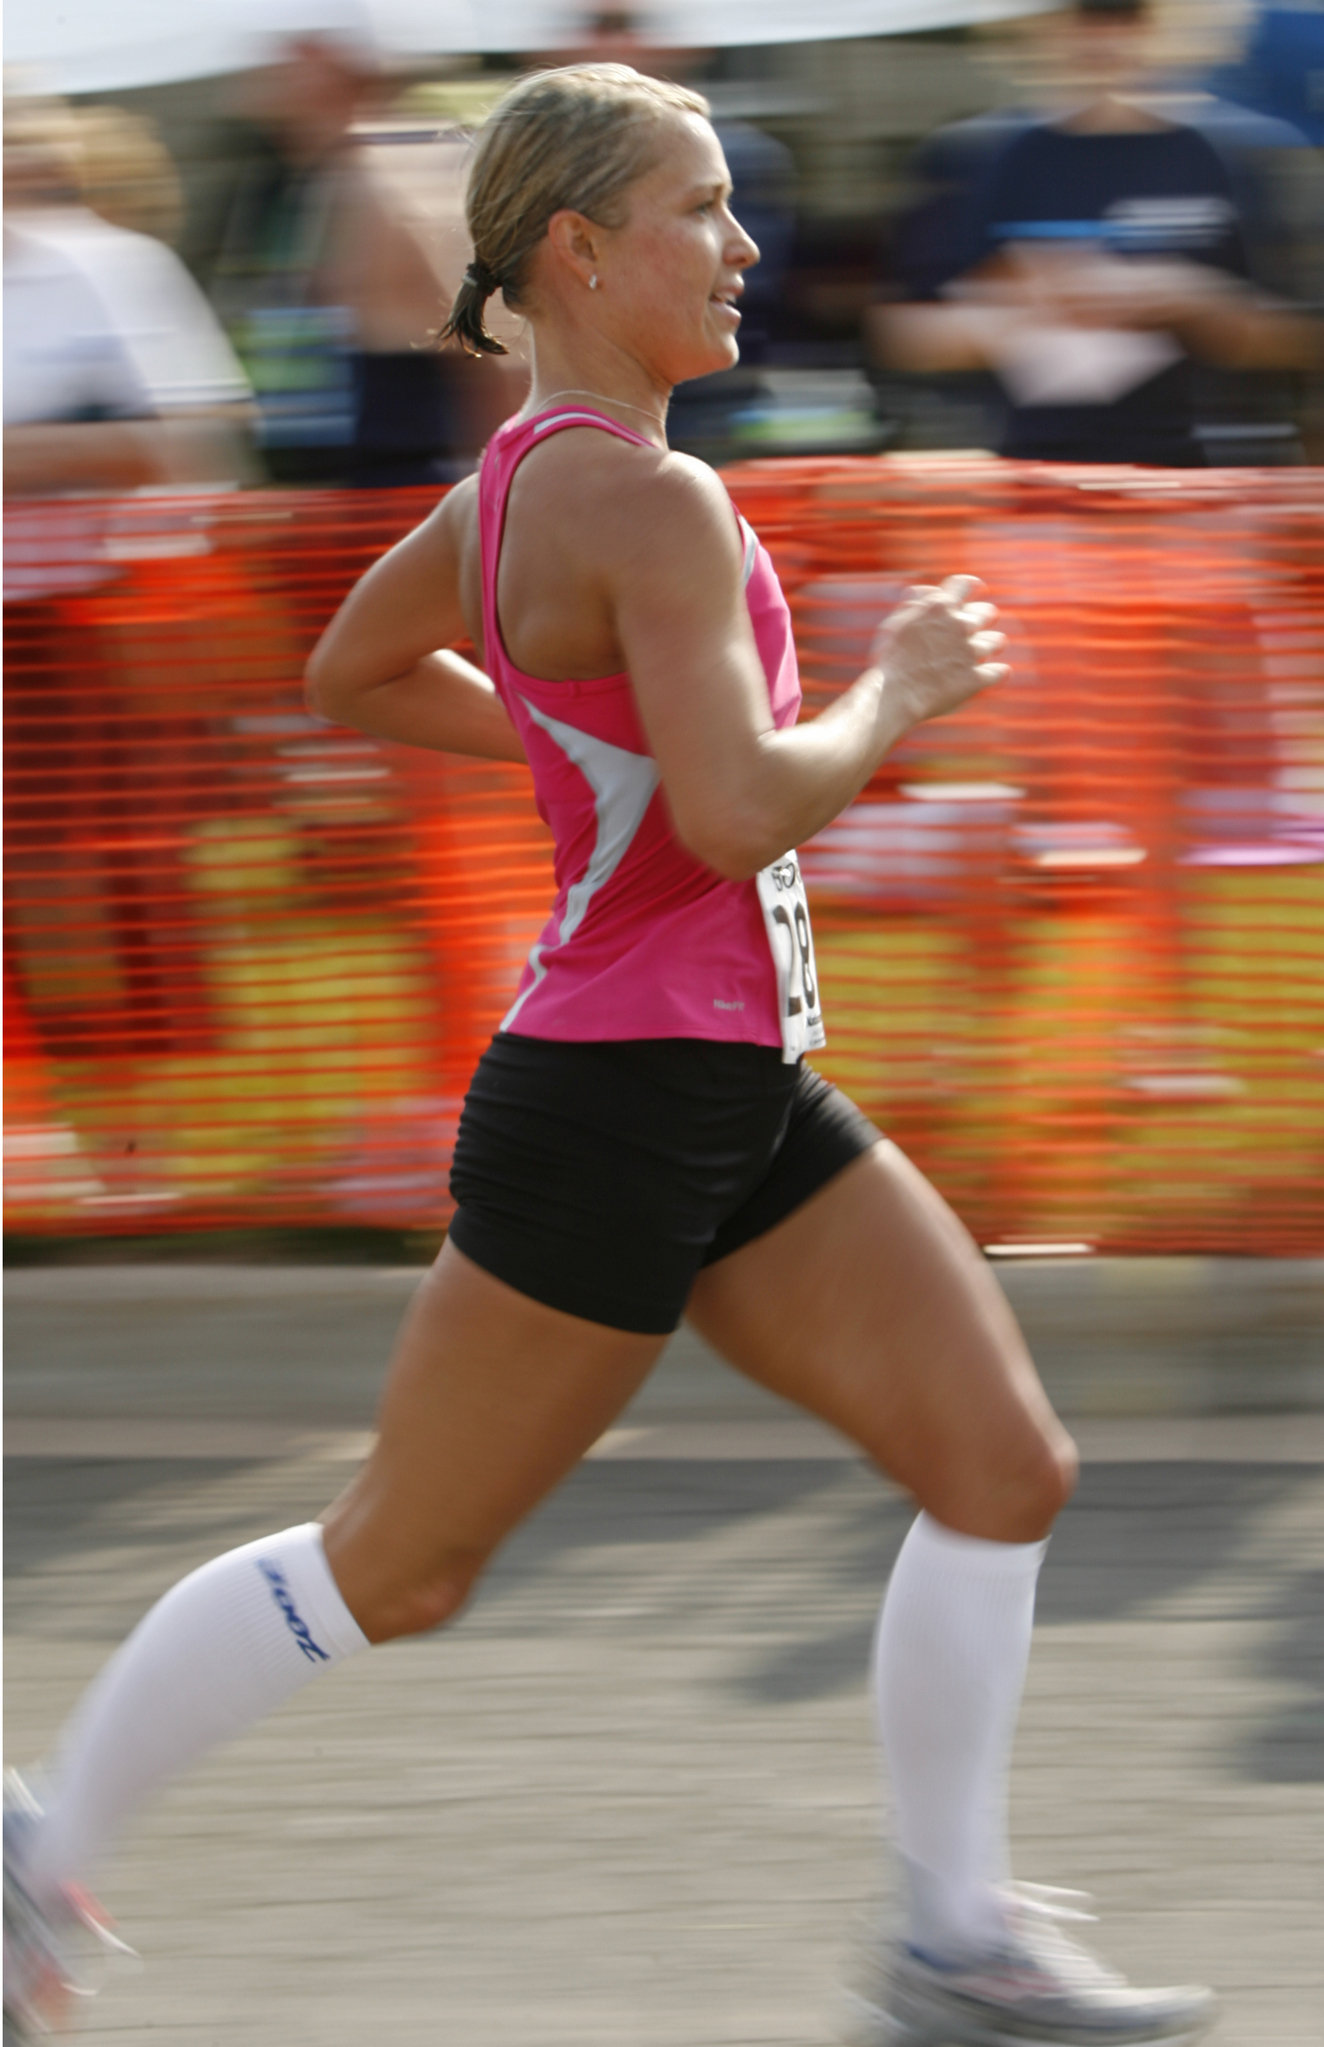 female-runner-in-knee-socksjpg-74f7c0fee21cb38e